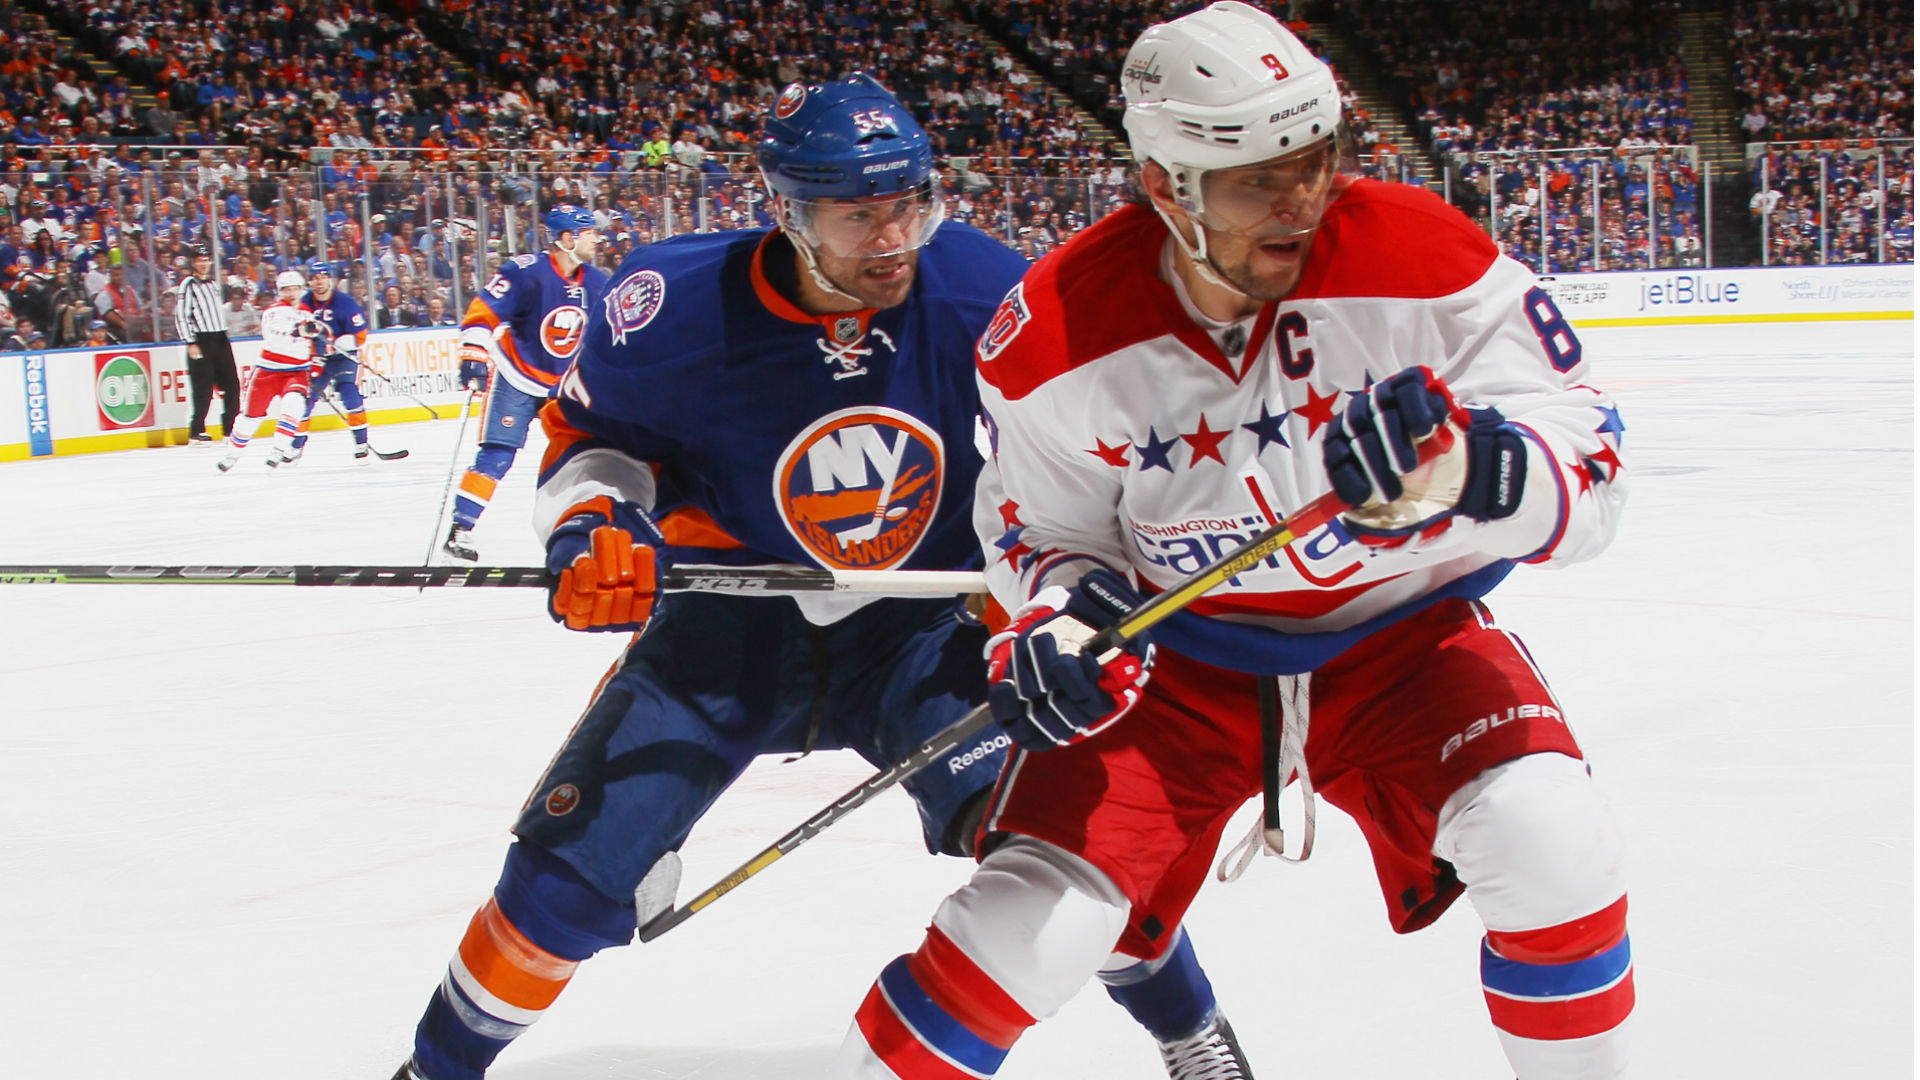 Capitals vs. Islanders Game 7 preview: Washington faces poor history at home